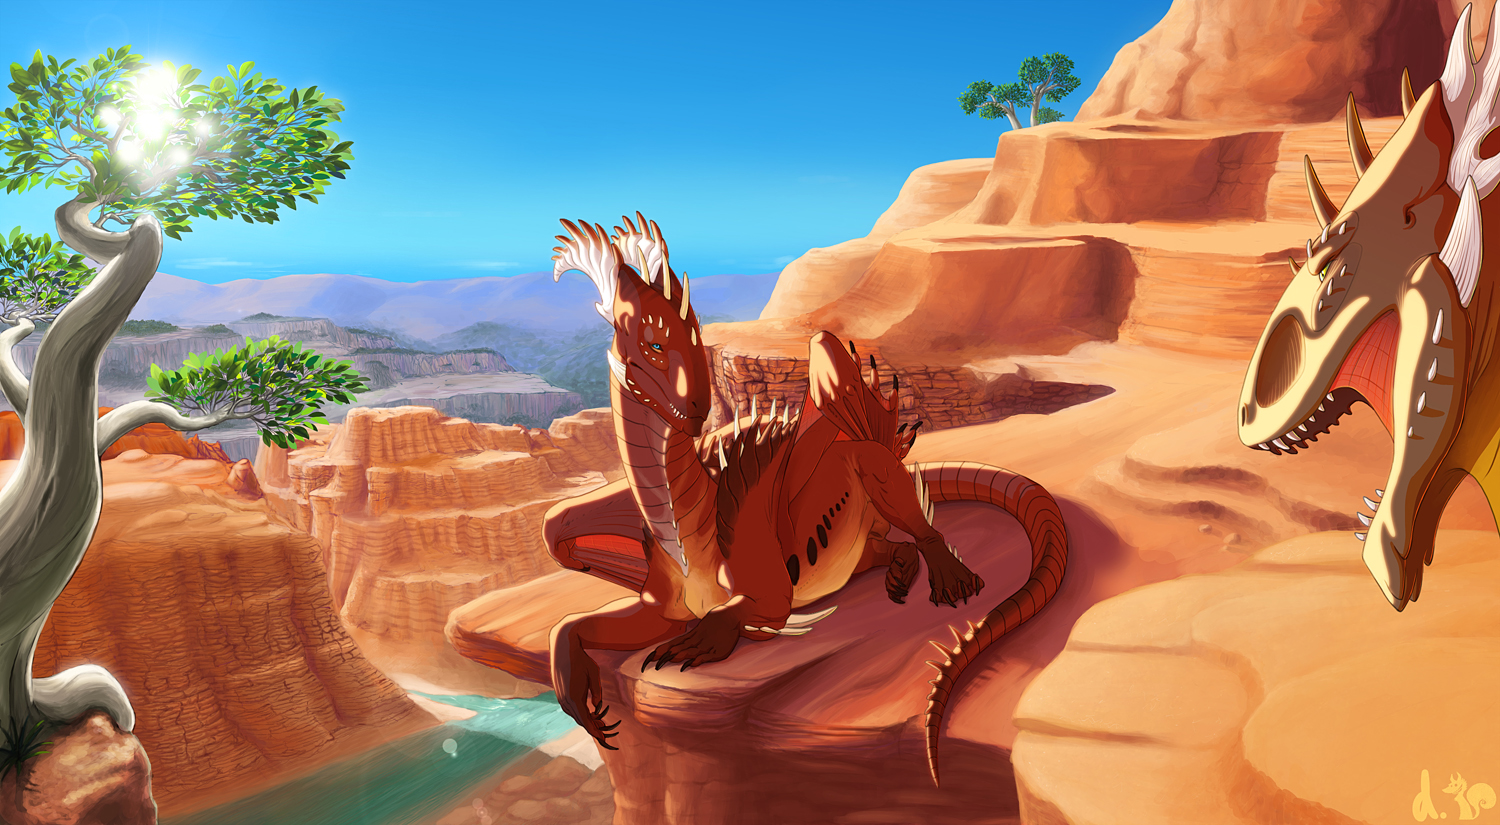 Canyon by dschunai